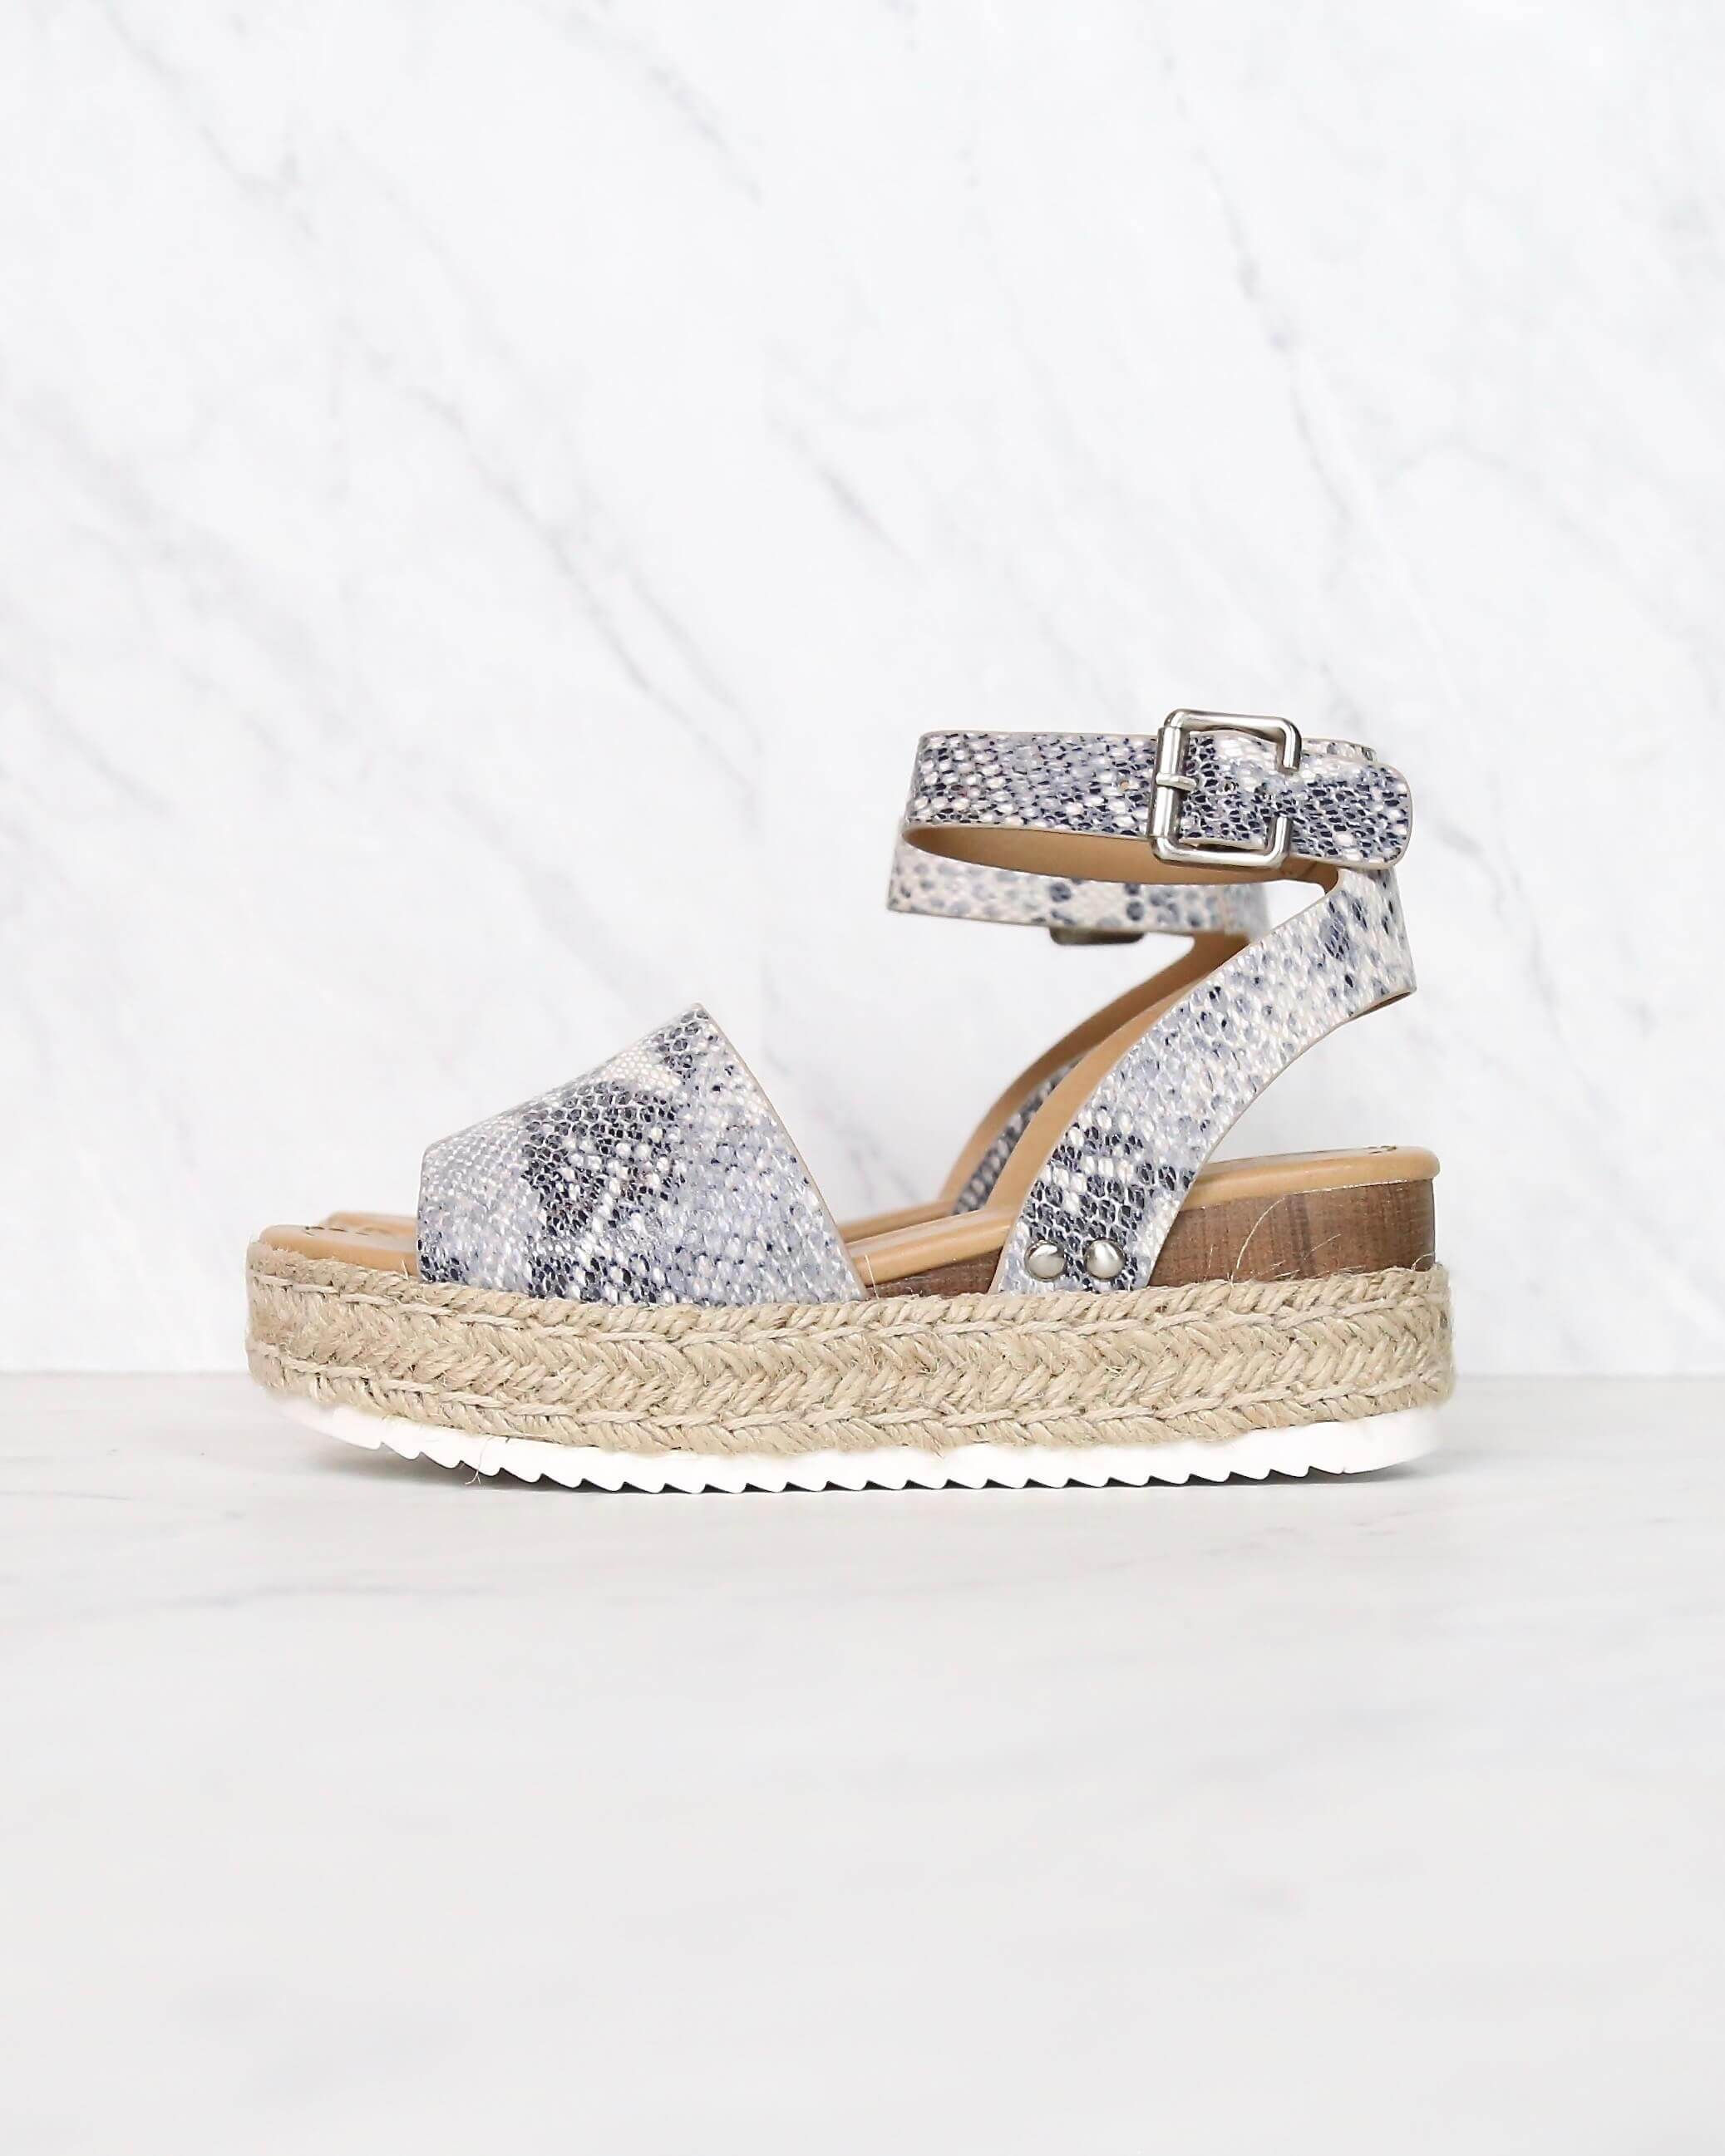 1880f19a358 Trendy Sporty Flatfrom Espadrille Sandal with Adjustable Ankle Strap i